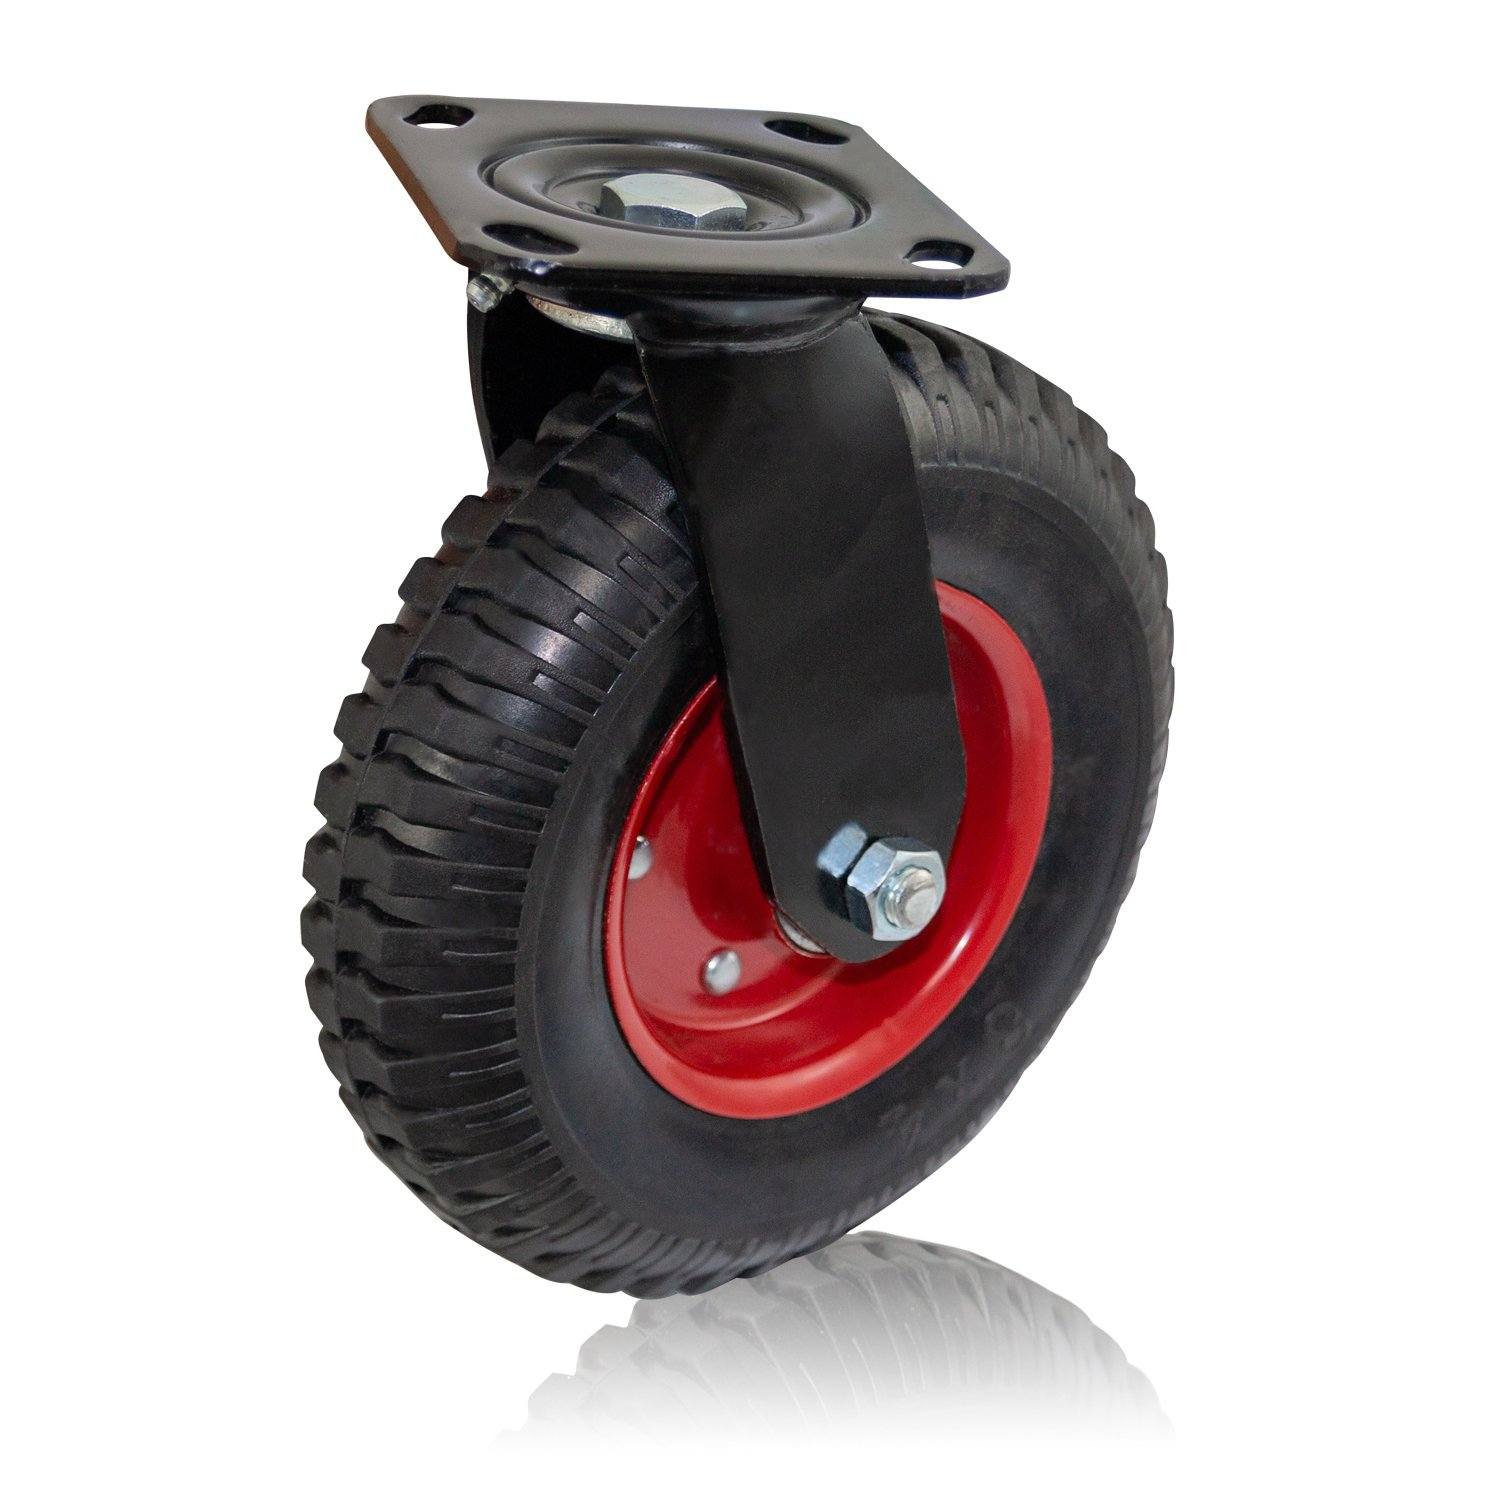 Houseables Caster Wheel, Industrial Casters, 8 Inch, 1 Wheel, Red Rim, Rubber, Cast Iron, Large, Heavy Duty Tires, Outdoor, Swivel, Flat Free for Carts, Dolly, Workbench, Trolley